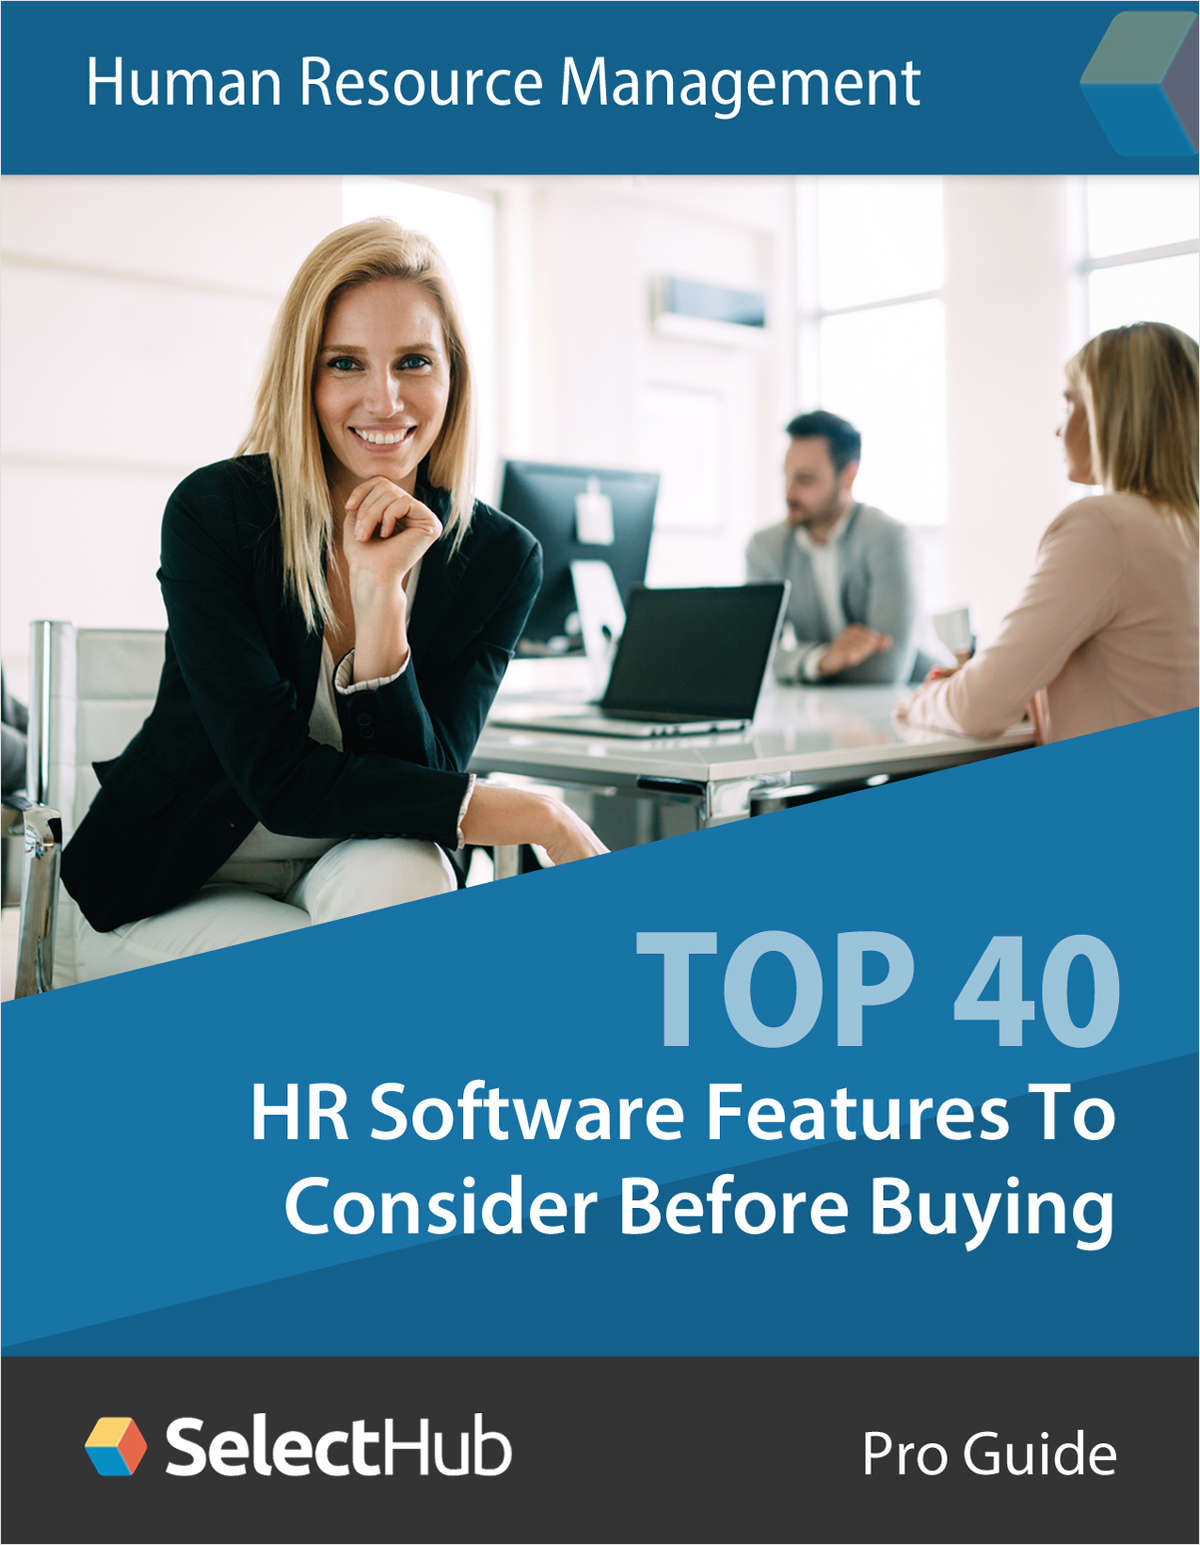 The Top 40 HR Software Features You Must Consider Before Buying